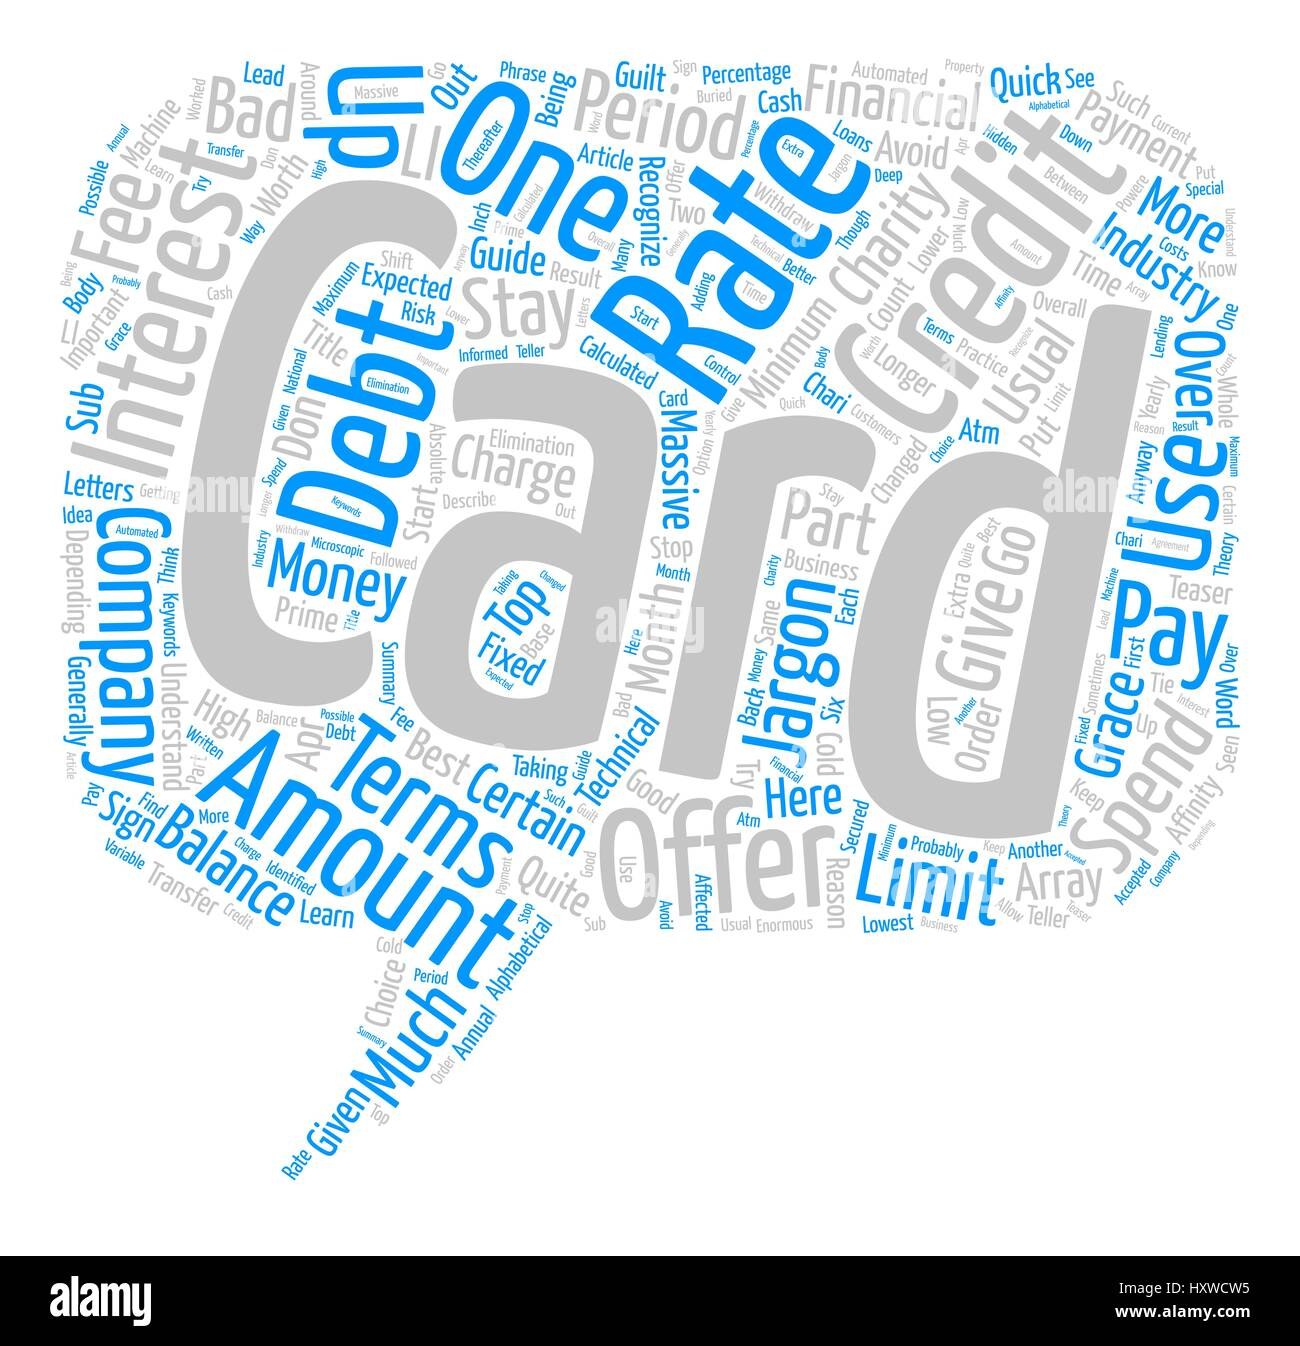 Learn The Credit Card Business Jargon And Stop Your Debt Cold Word Stock Vector Image Art Alamy